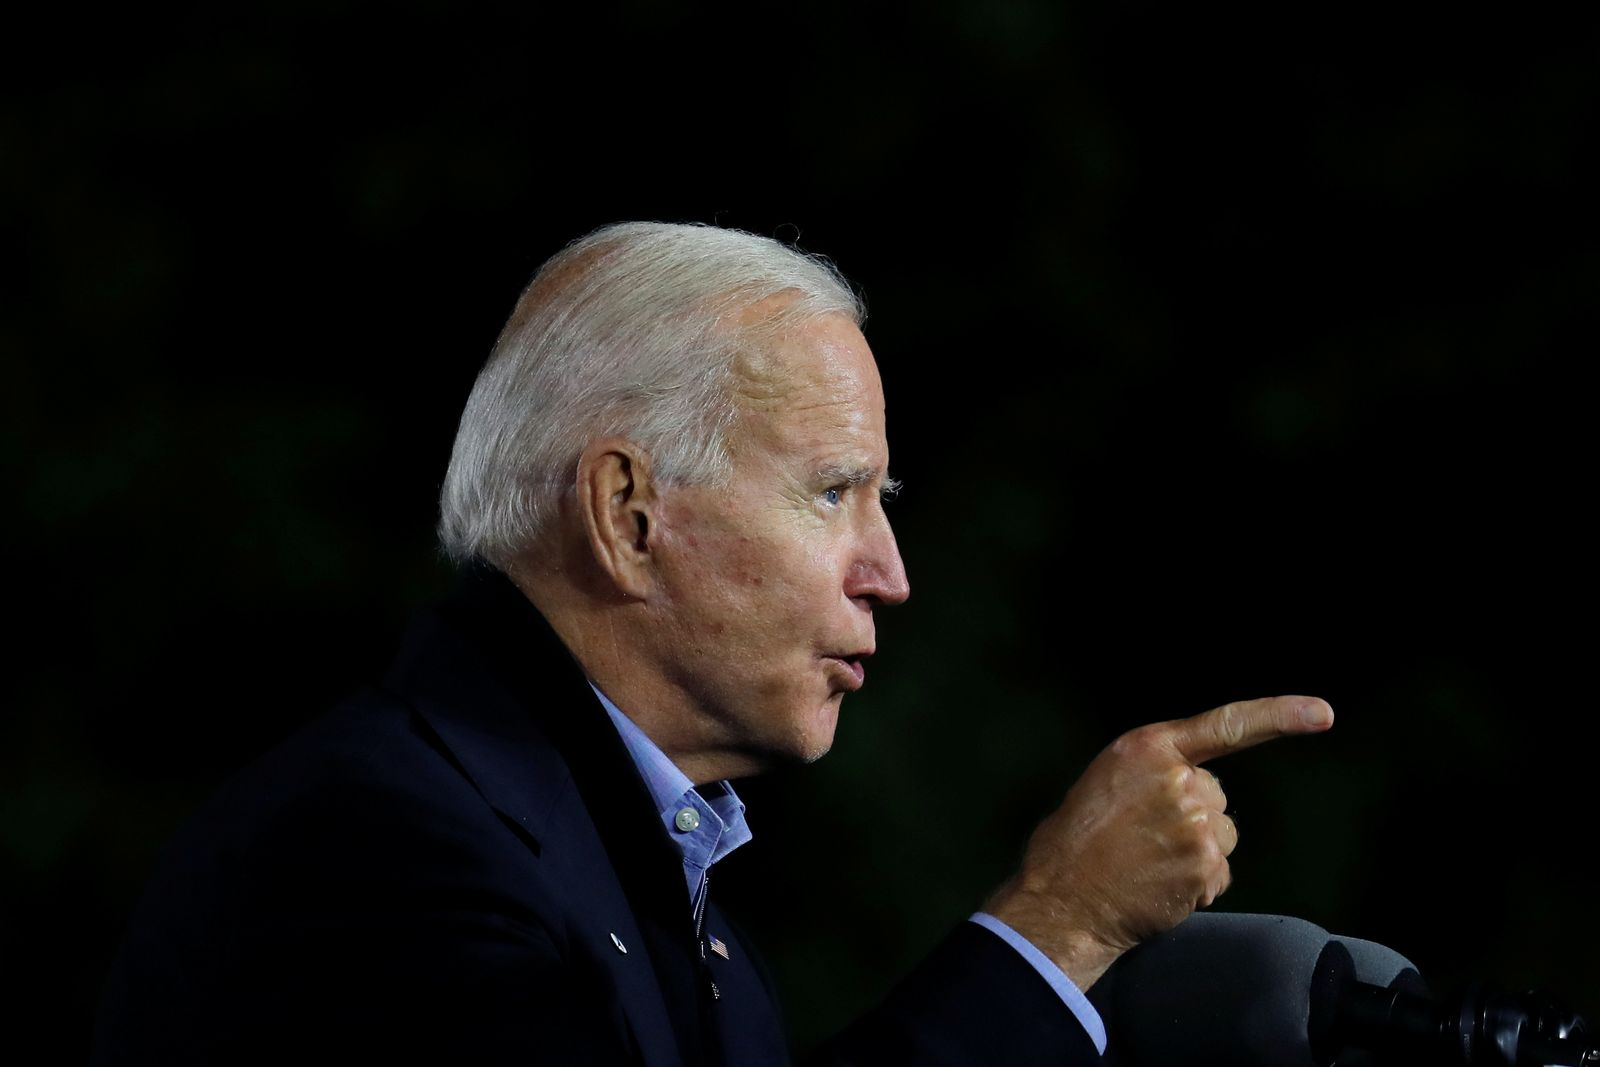 U.S. Democratic presidential candidate and former Vice President Biden campaigns in Johnstown